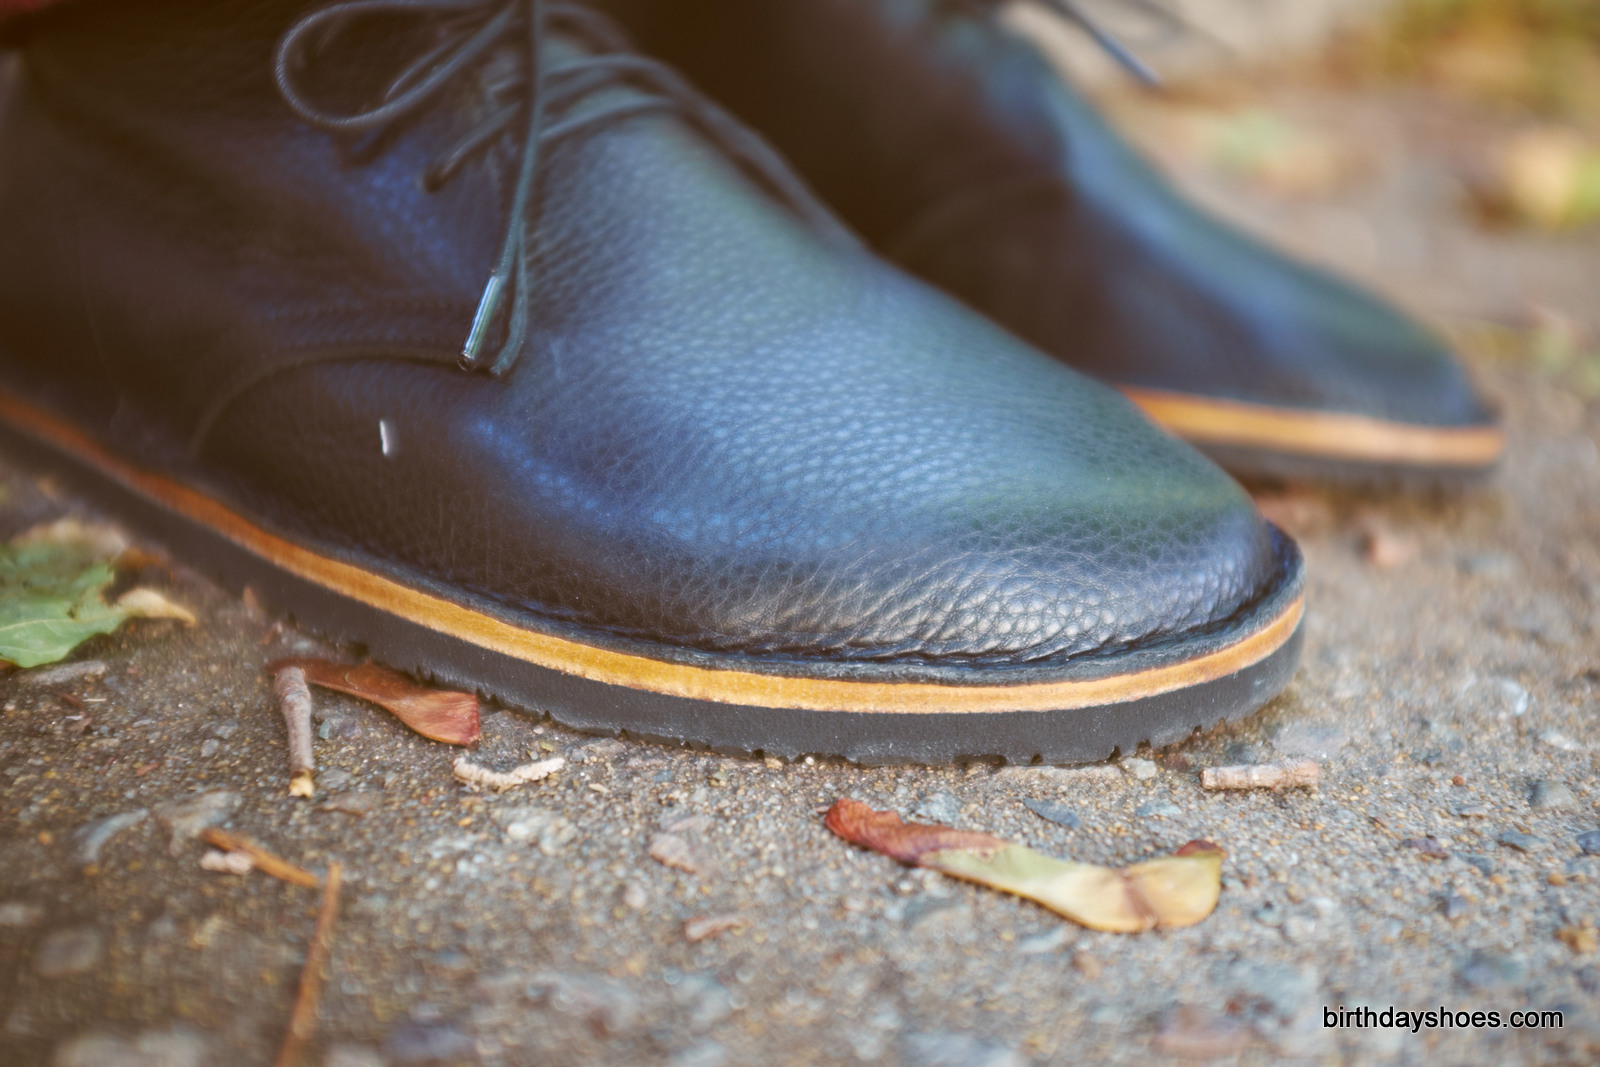 The layered sole of the Hawthorne features a leather midsole an replaceable Vibram Geo sole